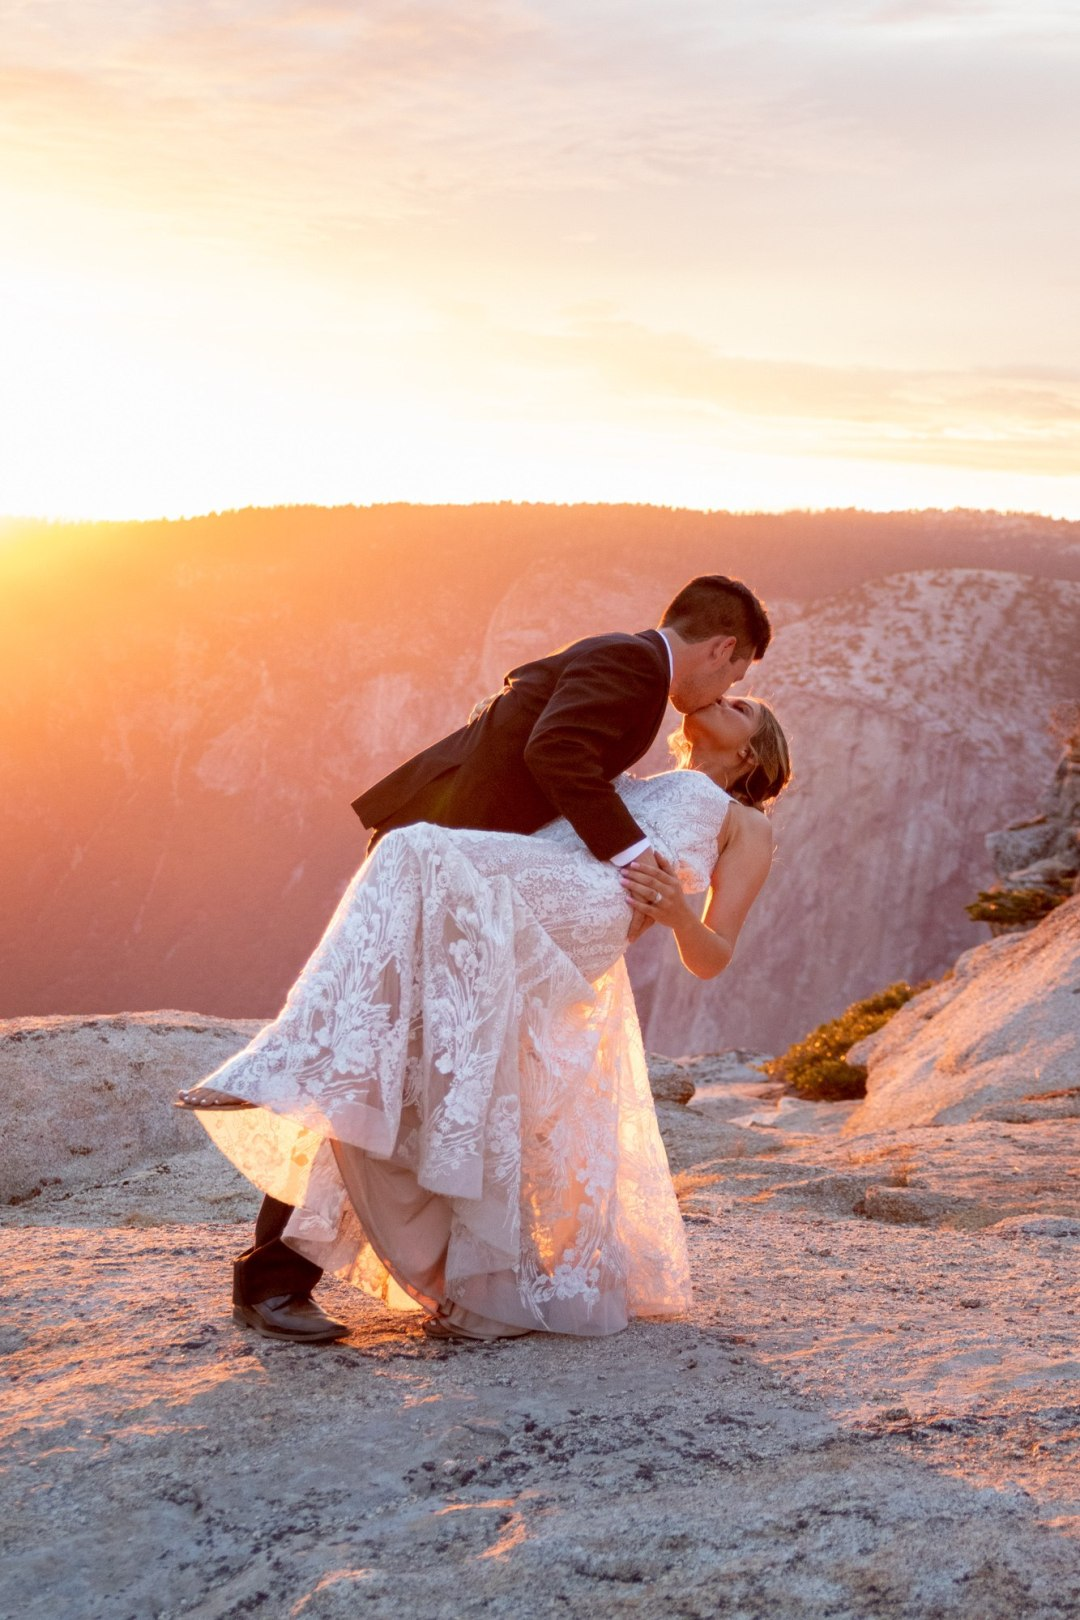 A perfect dip and kiss during an epic Taft Point Sunset in Yosemite.